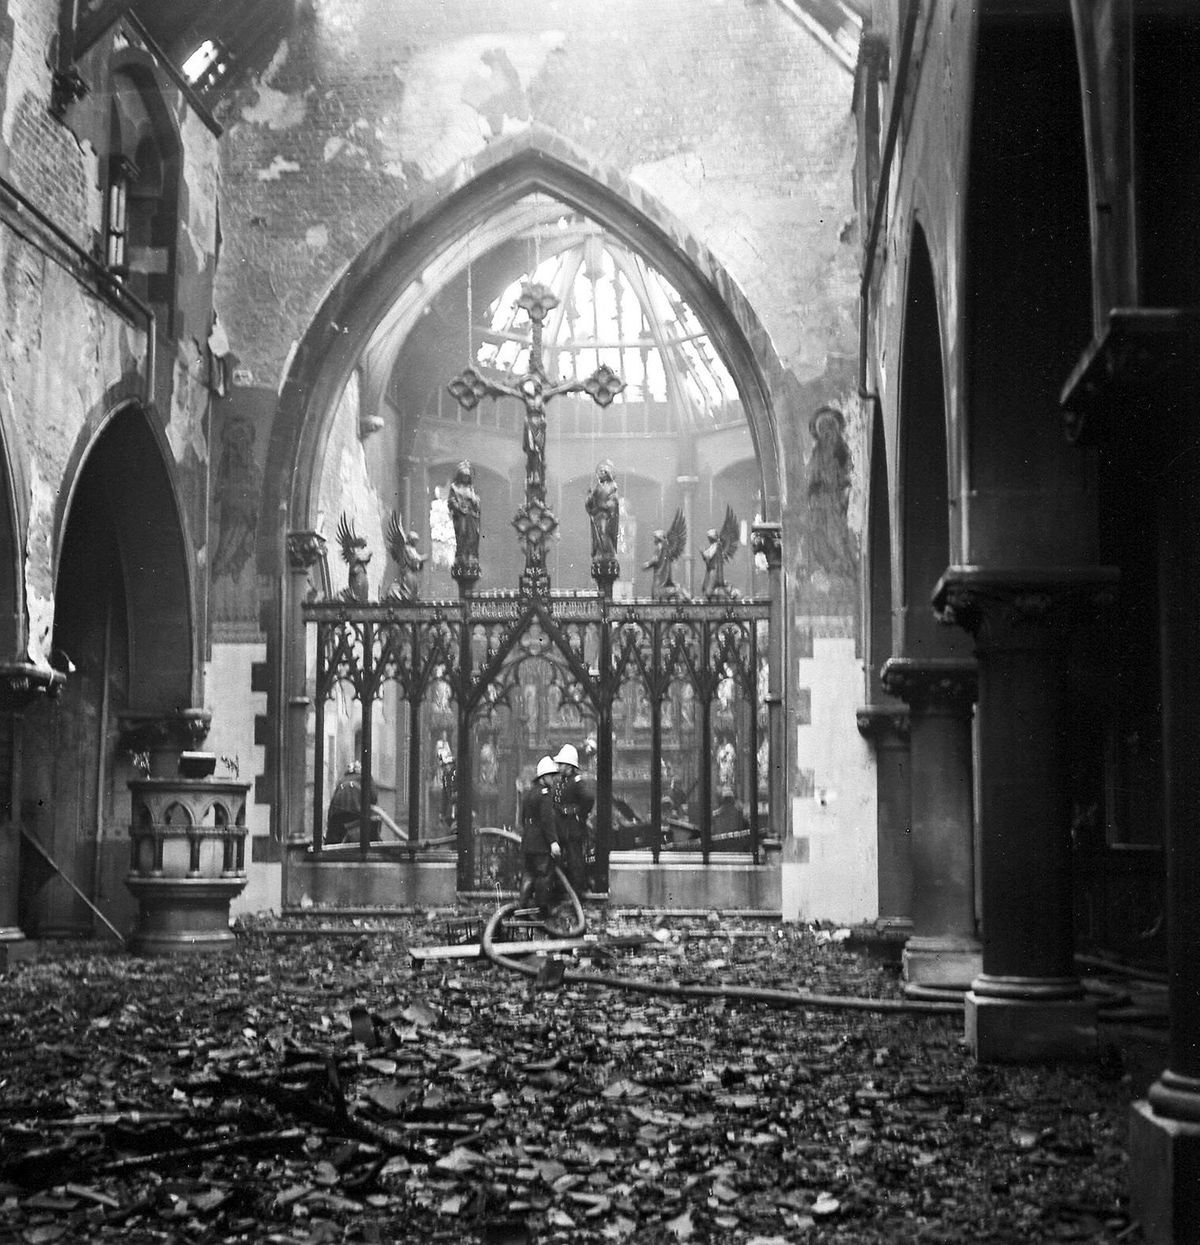 St Michael's and All Angels, Caldmore, Walsall distroyed by fire in 1964.